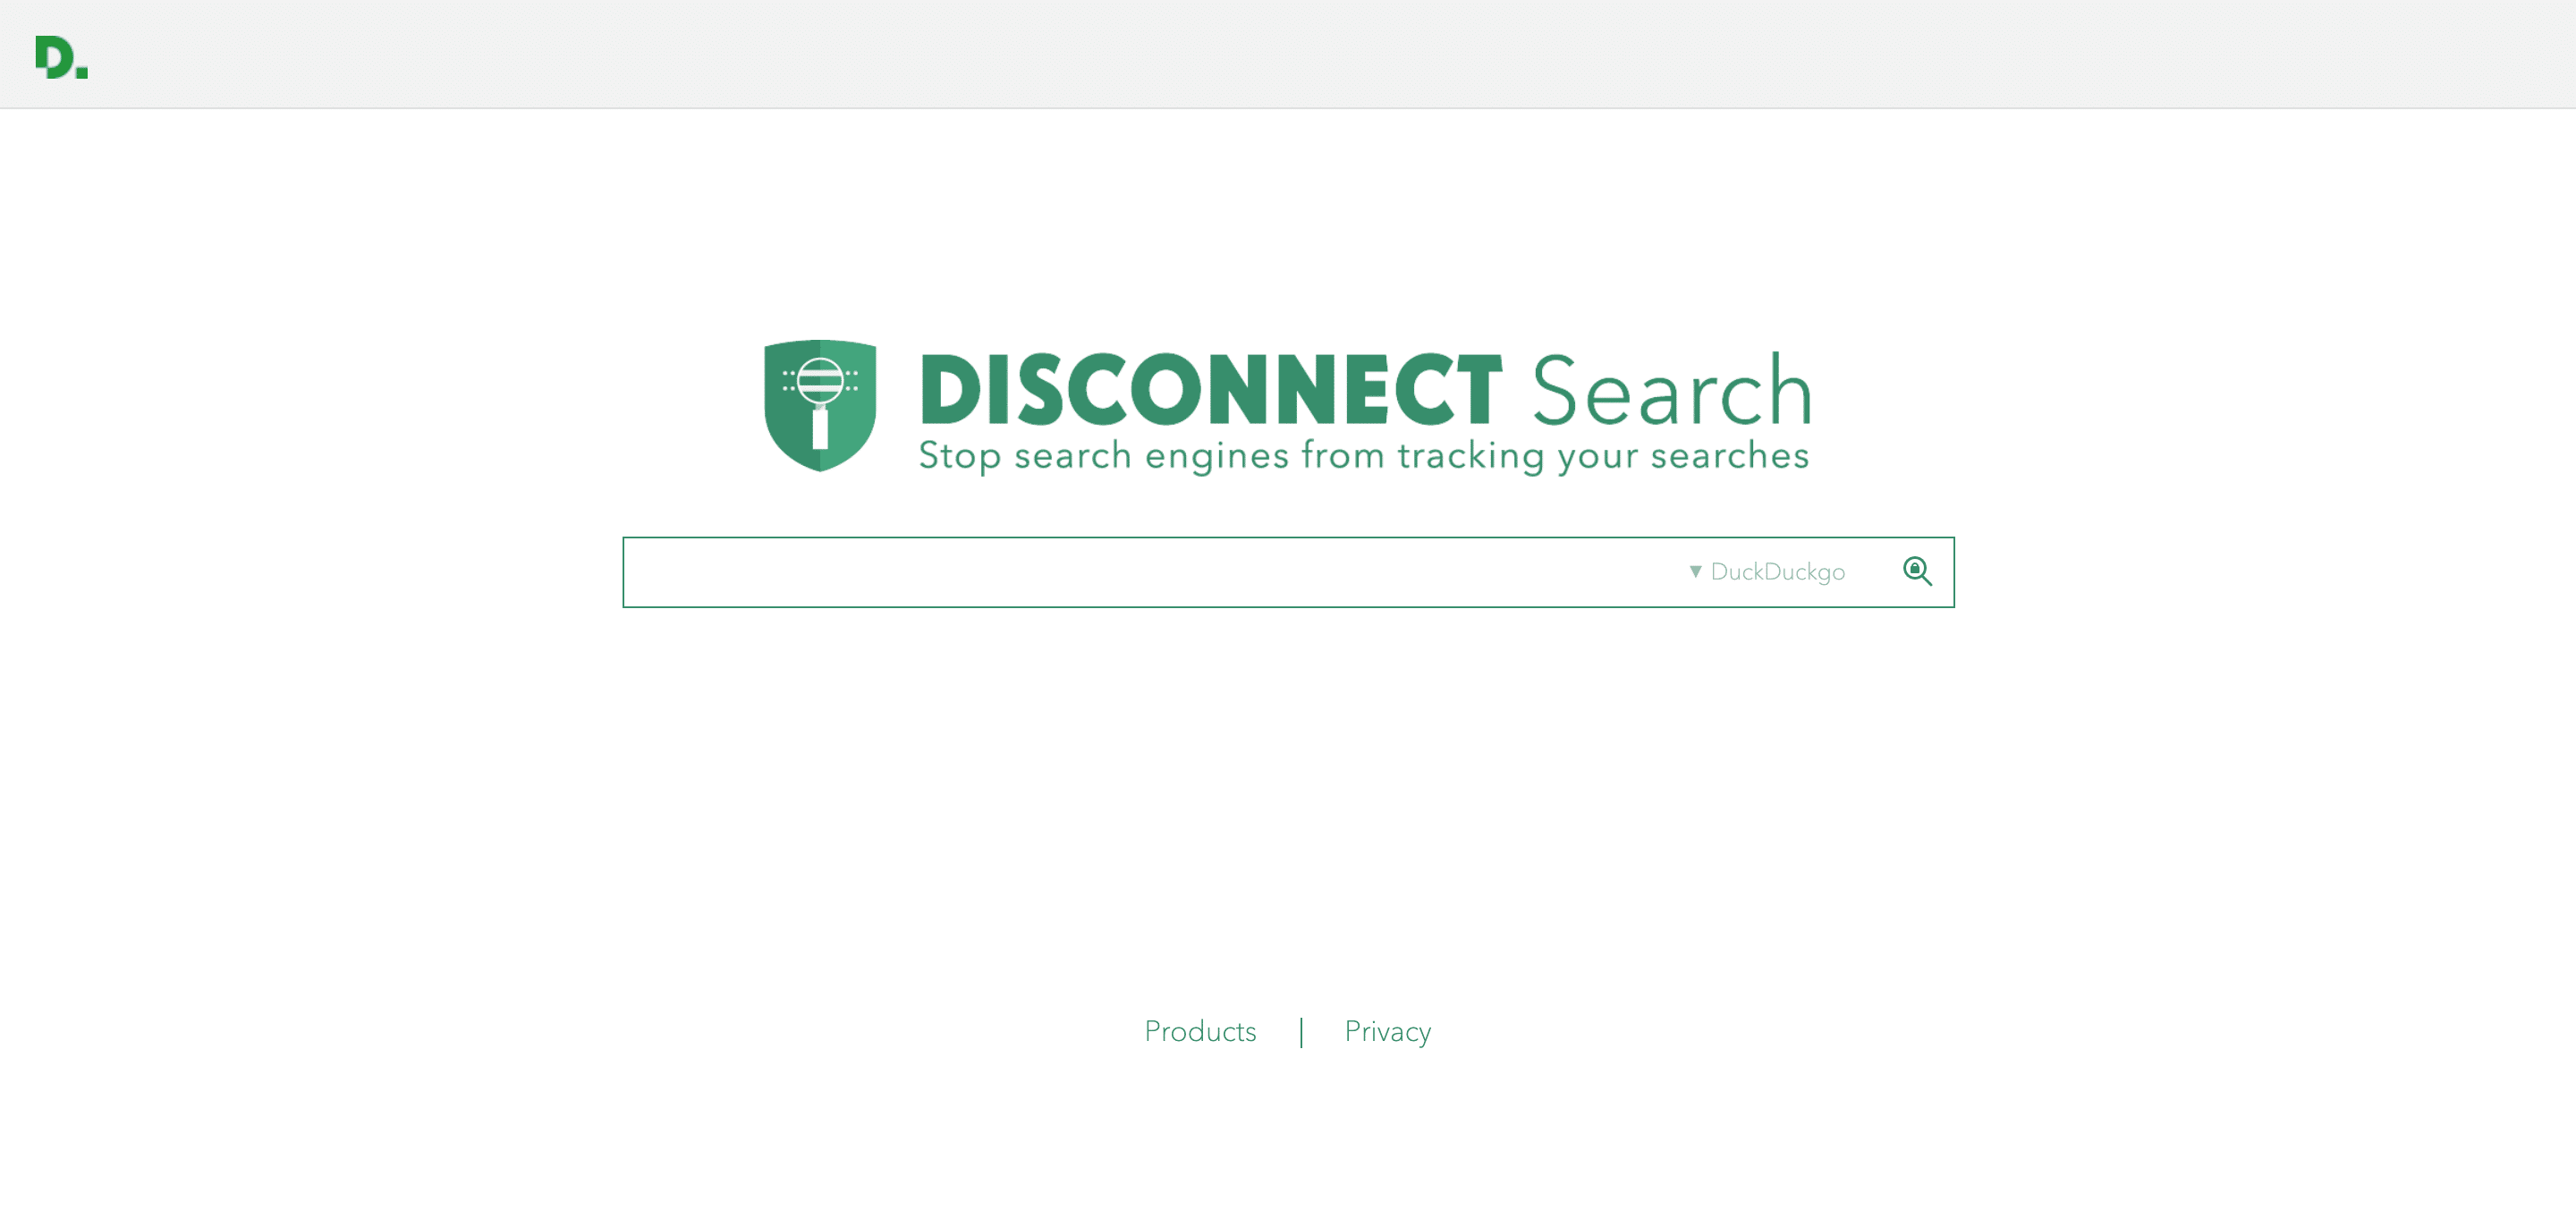 Disconnect Search Suchmaschine